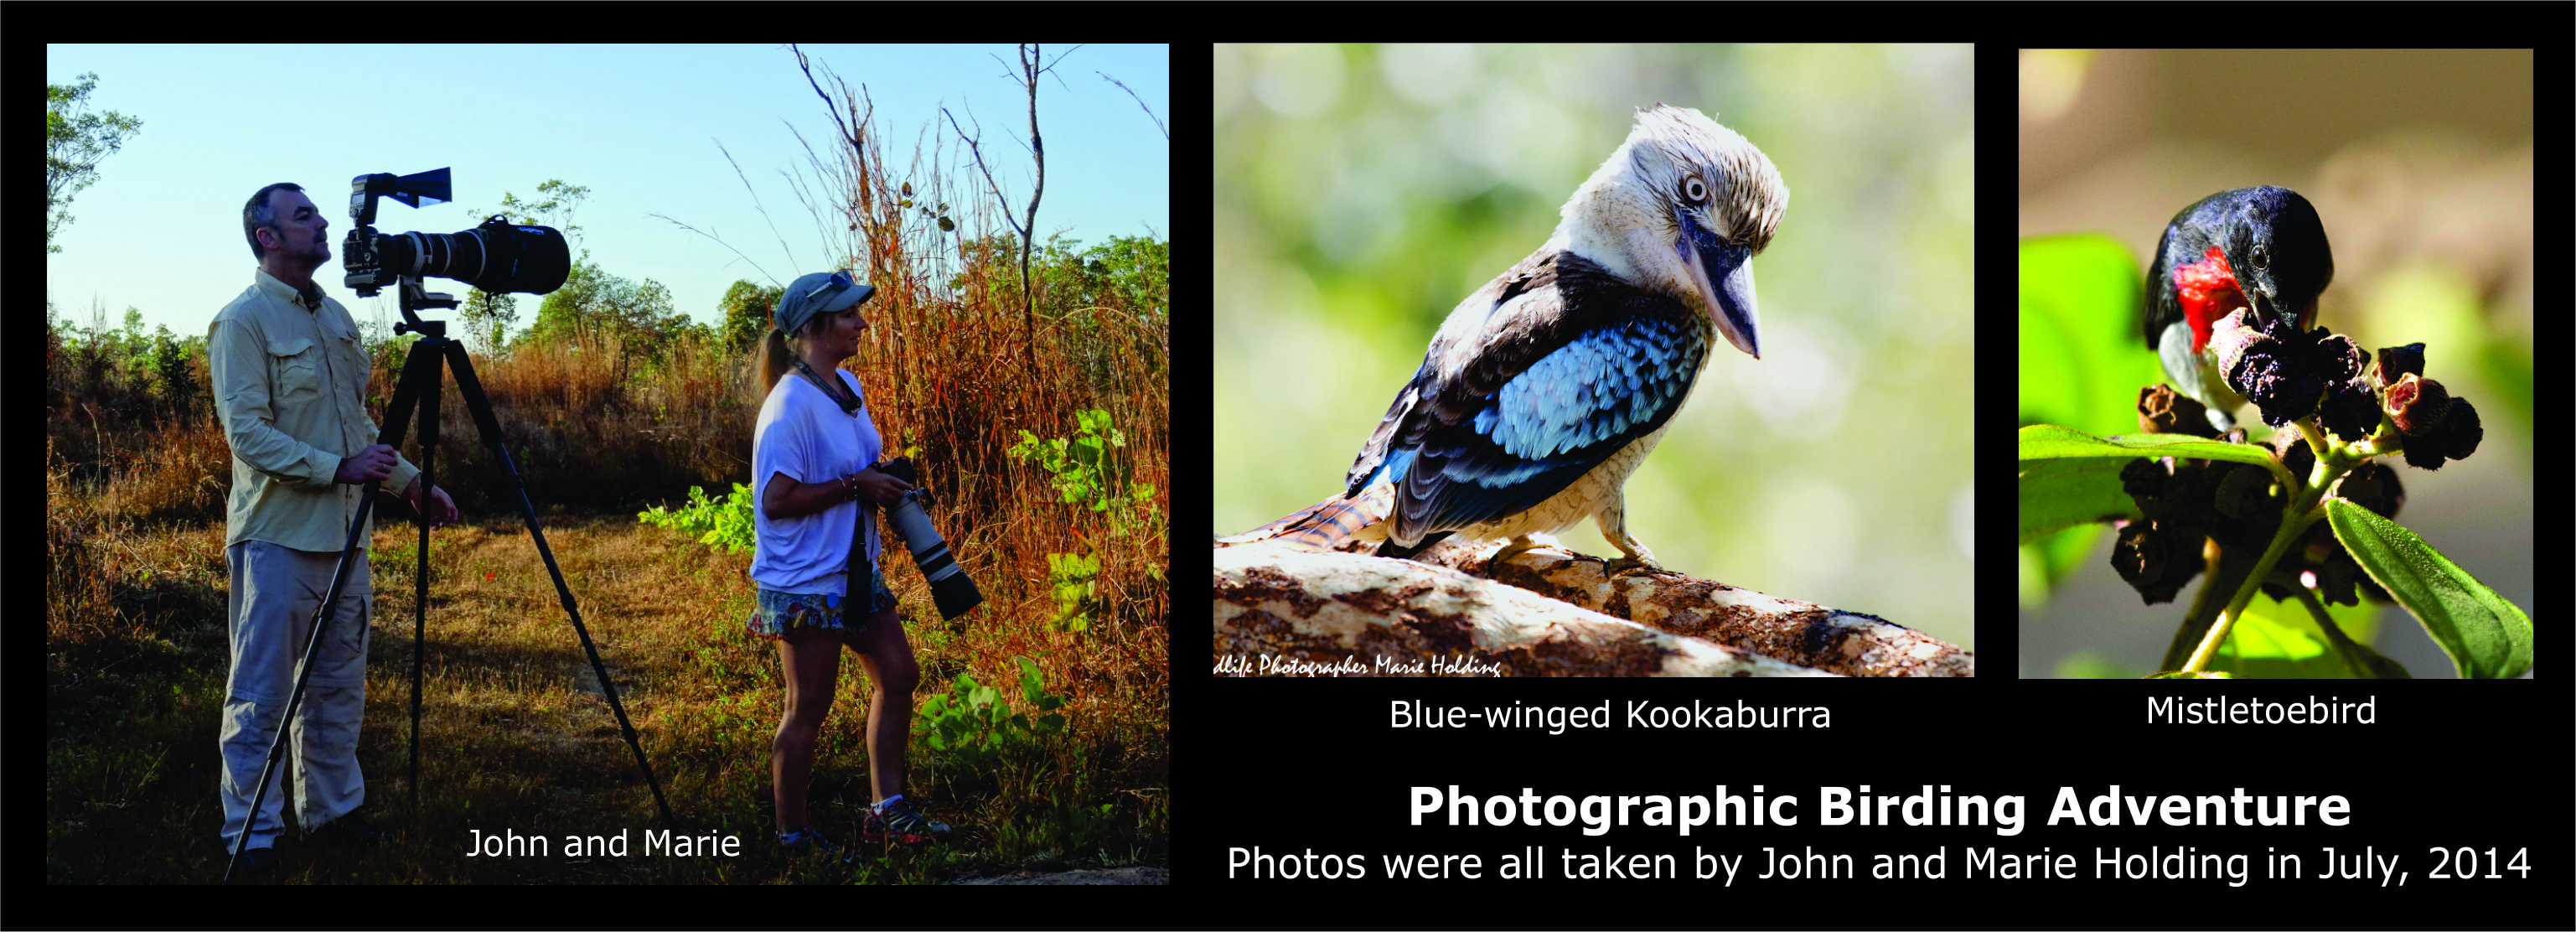 Blue-winged Kookaburra and Mistletoebird © Marie Holding